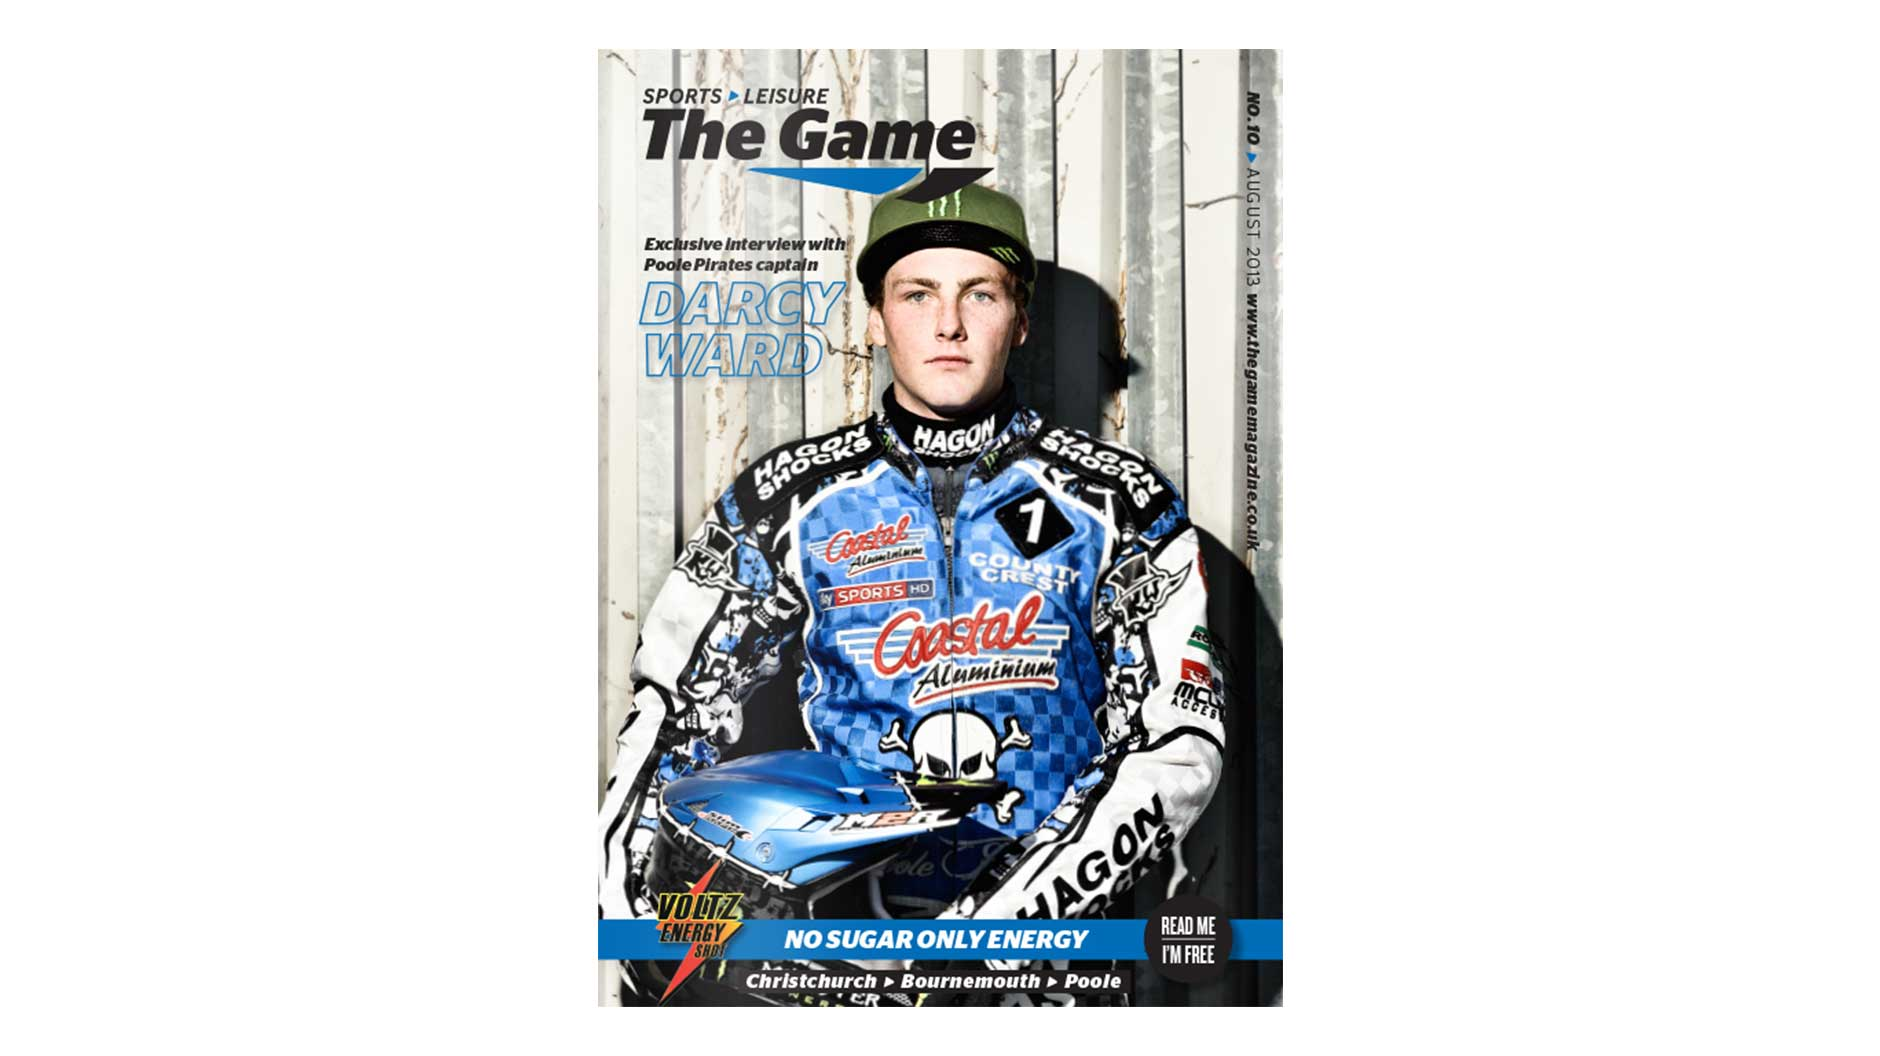 Game Magazine front cover August 2013 issue